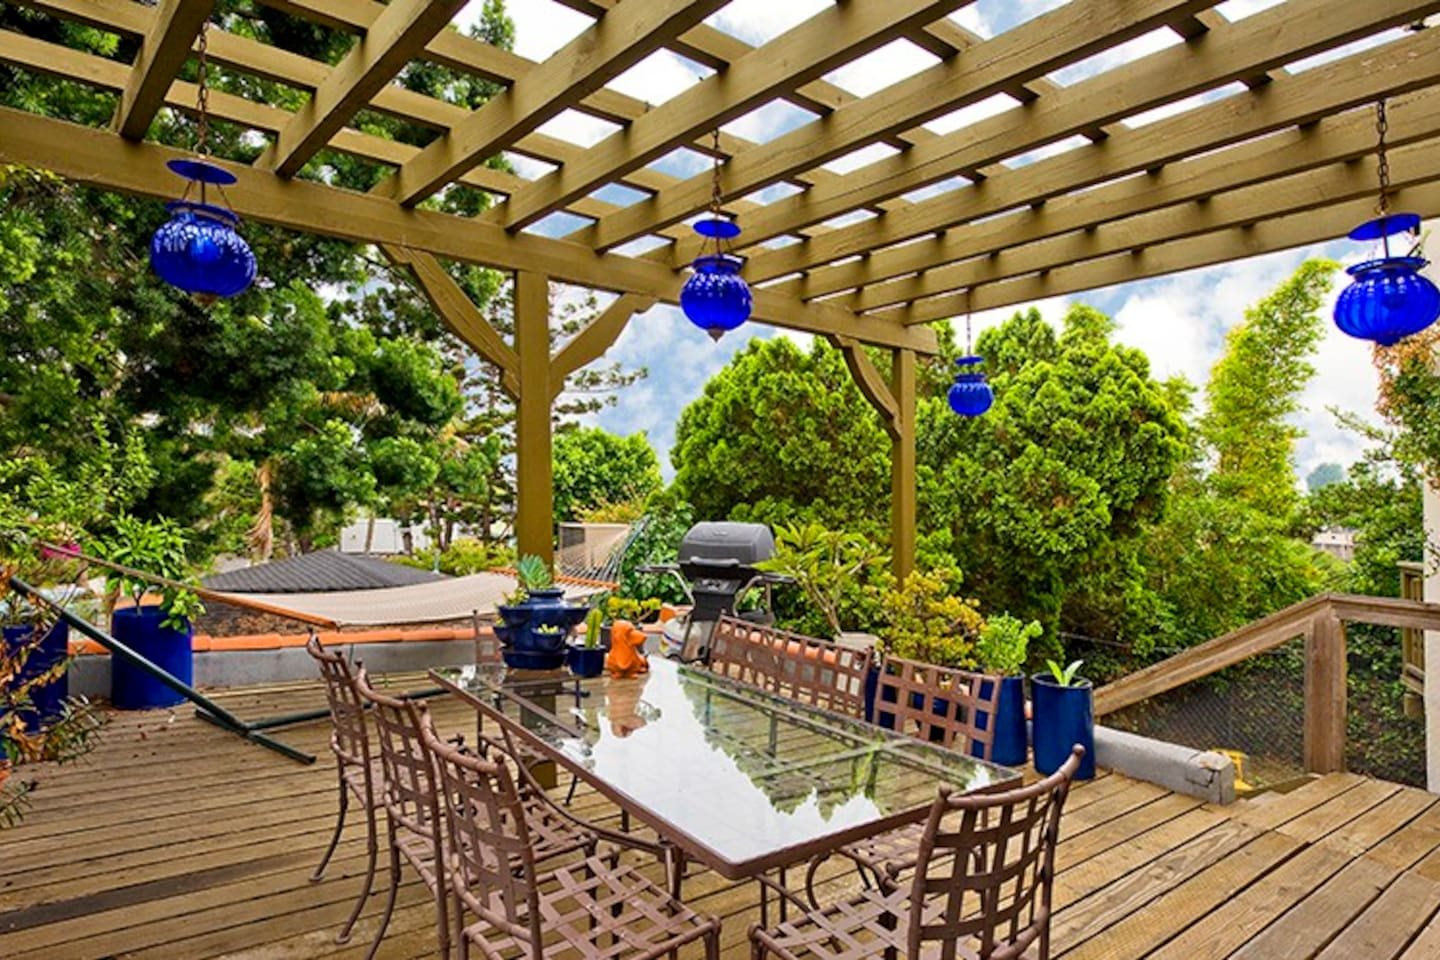 The sunny patio surrounded by plants -- with a hammock, seating for 8, and a grill.